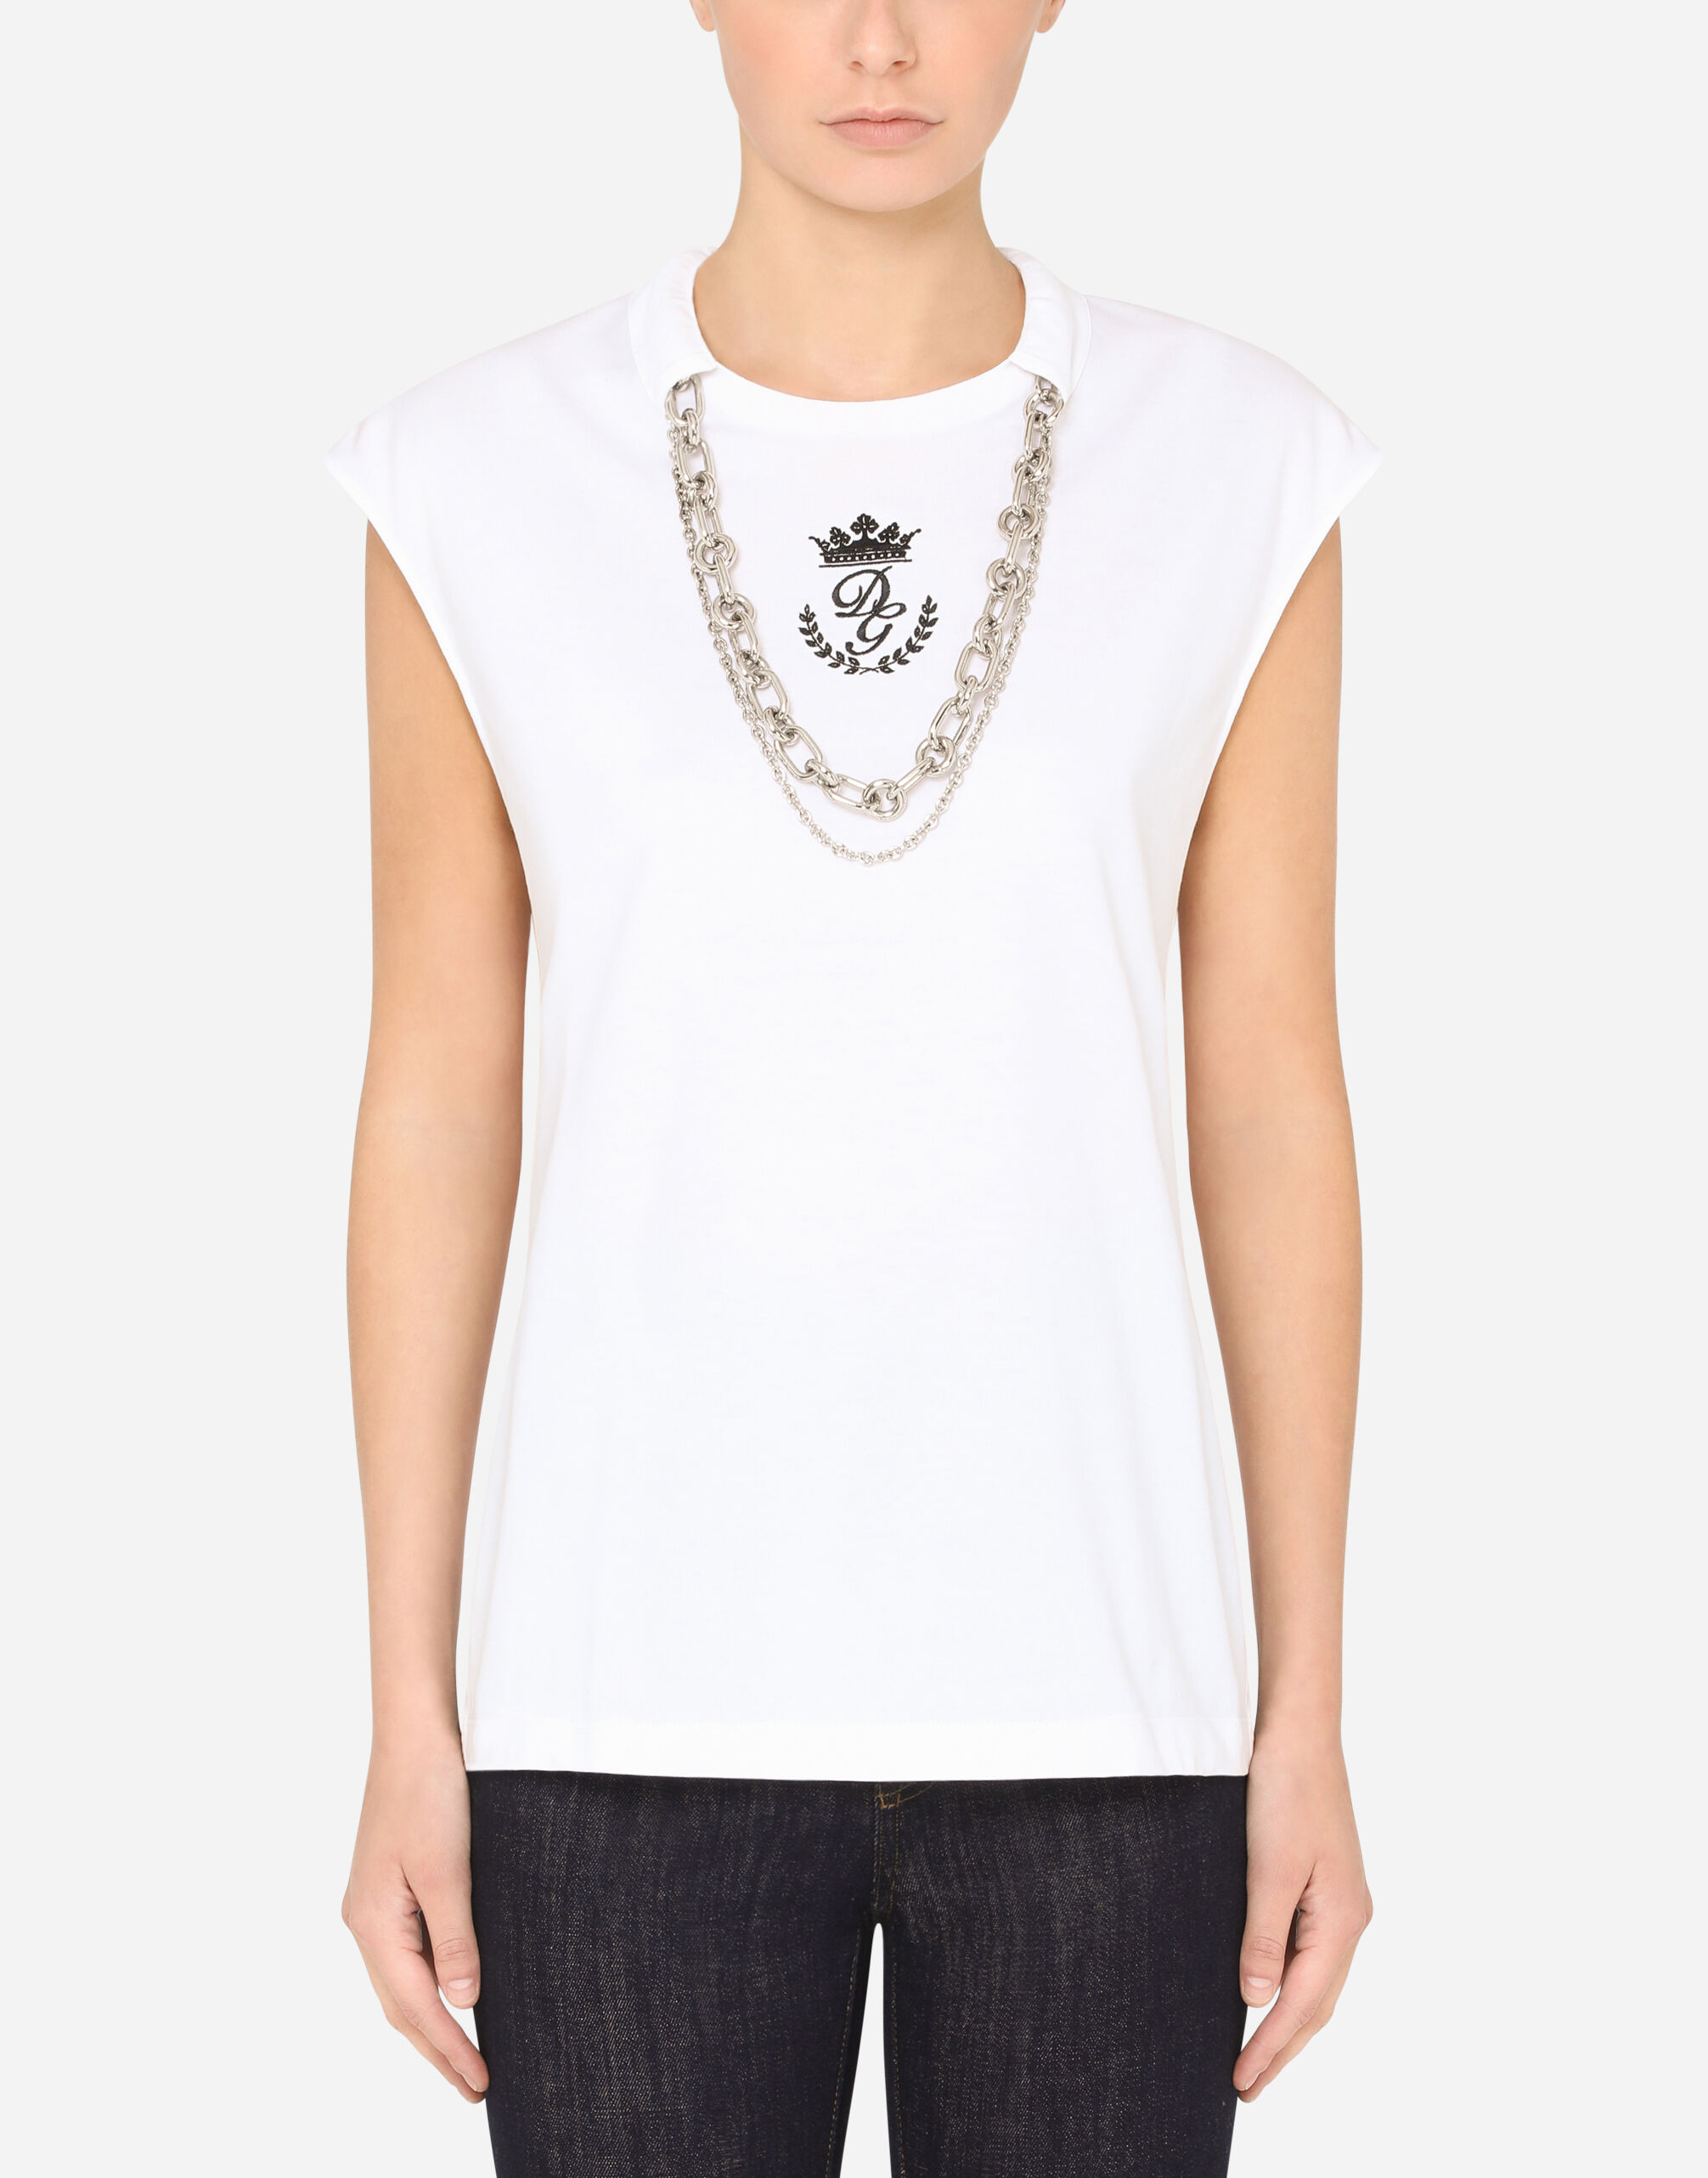 T-SHIRT IN JERSEY CON COLLANE